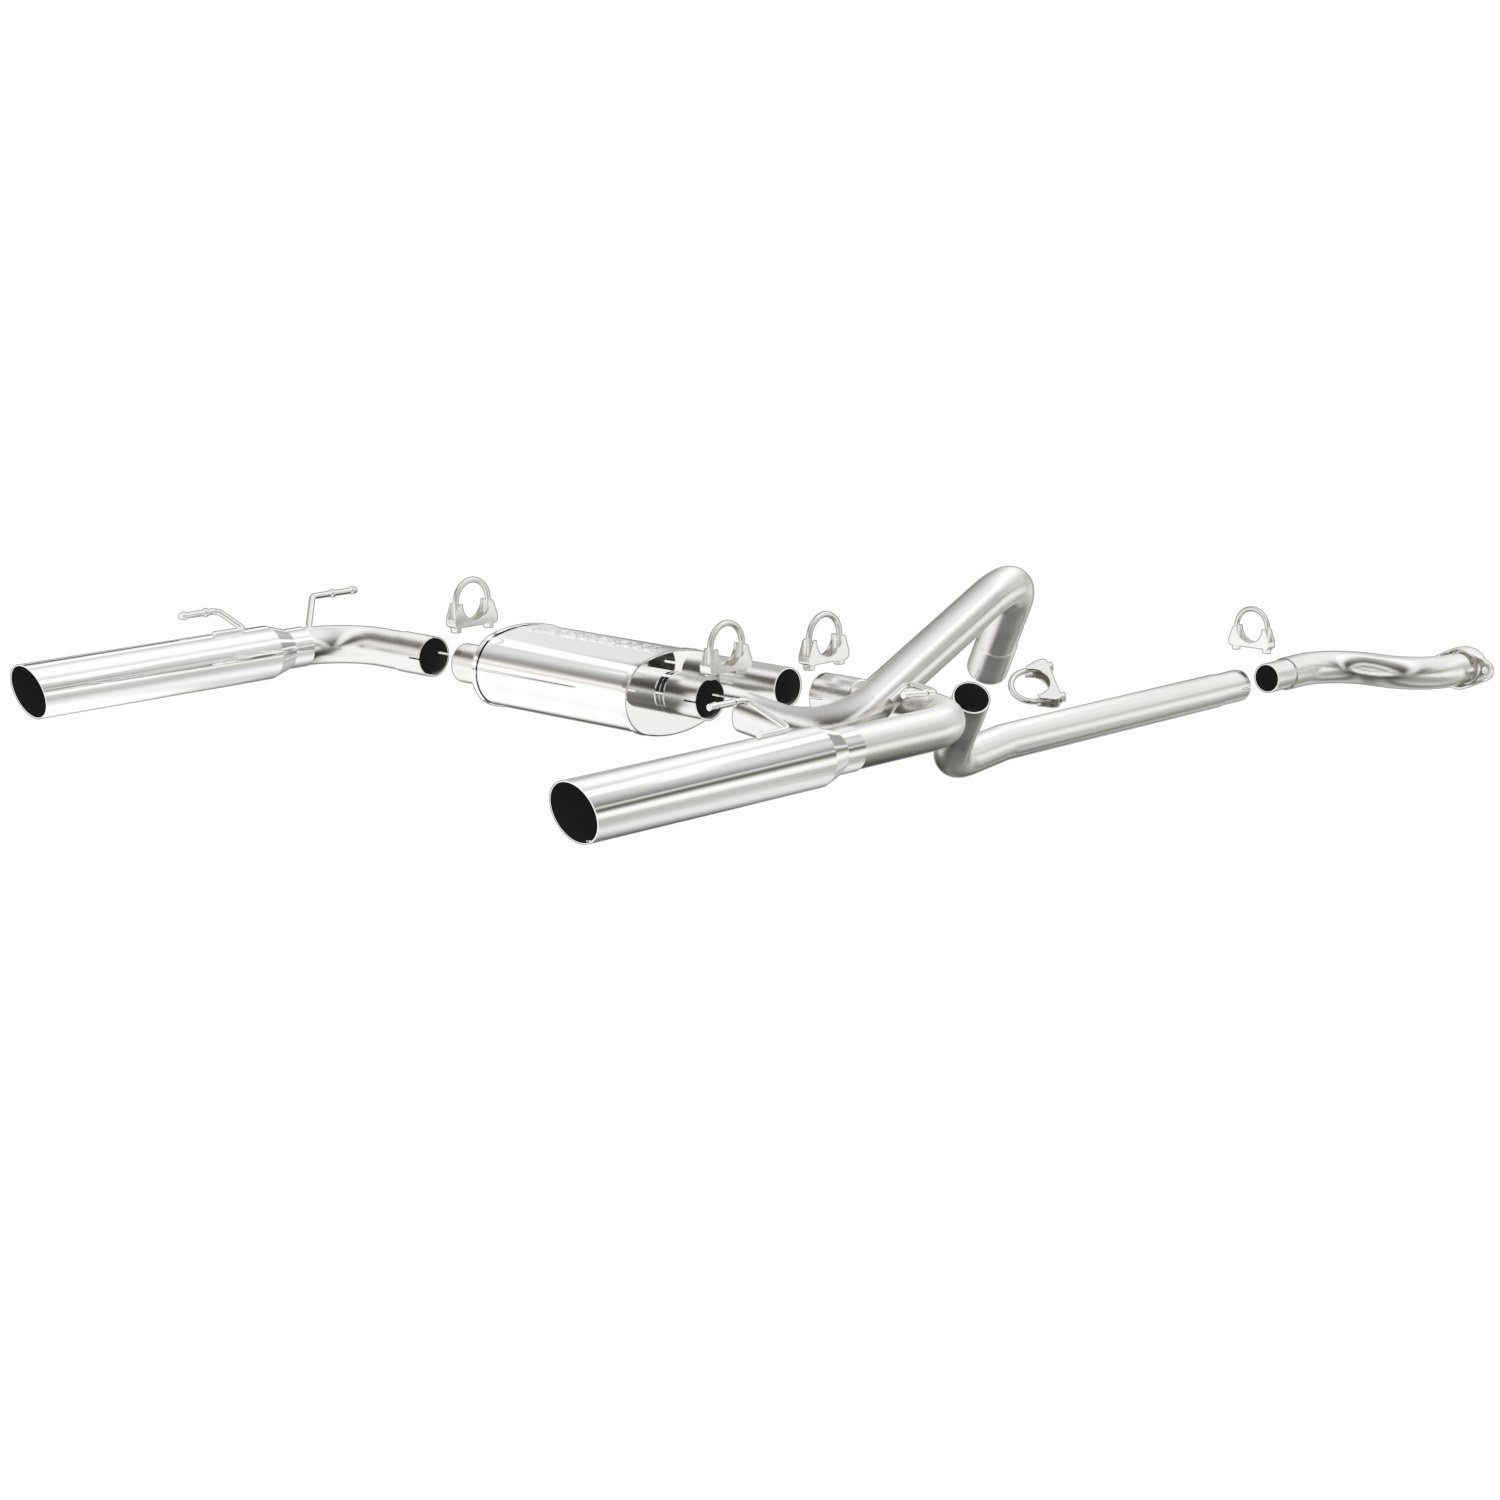 Magnaflow 15694 - Magnaflow GM Car Exhaust Systems